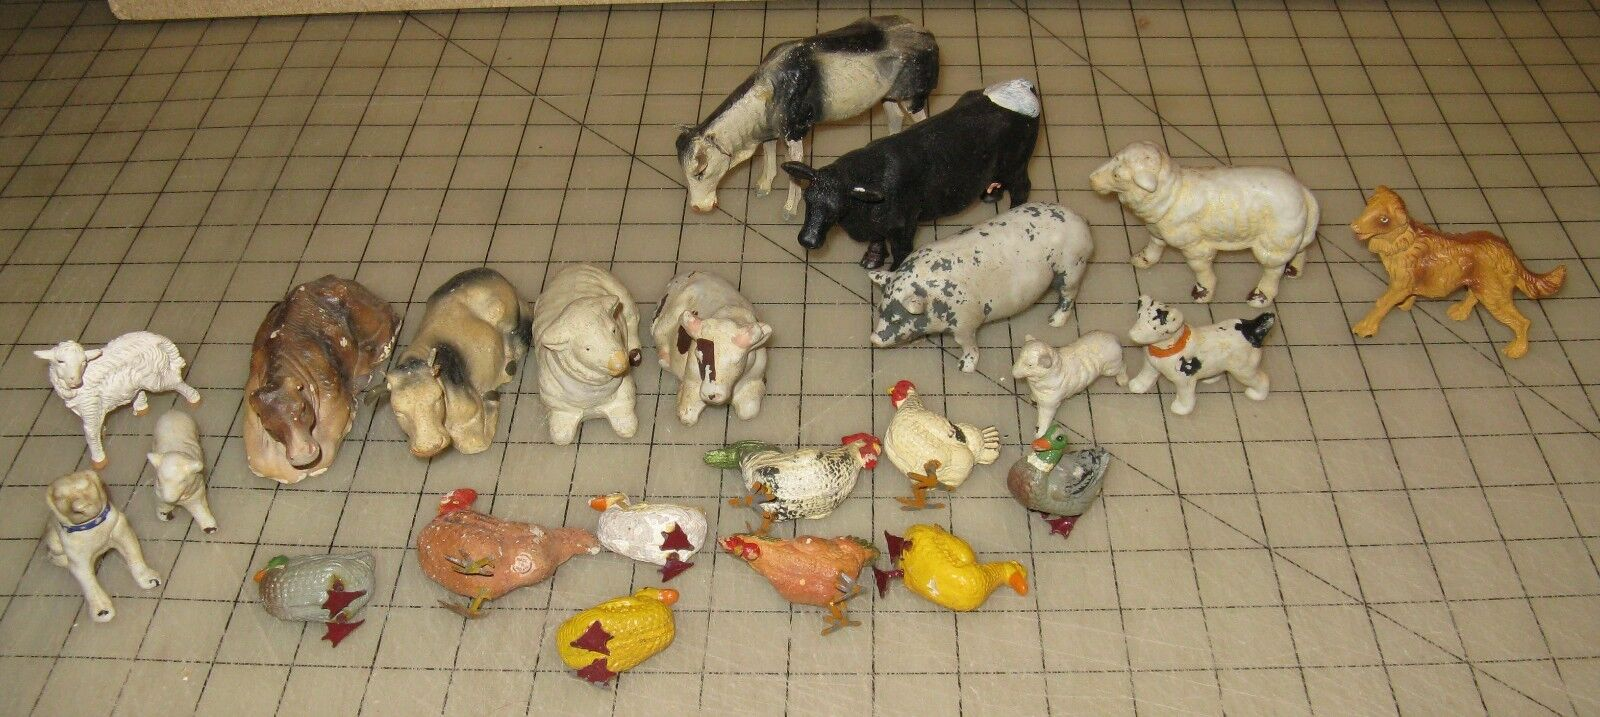 Large Lot of Vintage FARM ANIMAL Toy Figurines, 2 Made in Japan - Chalk, Plastic